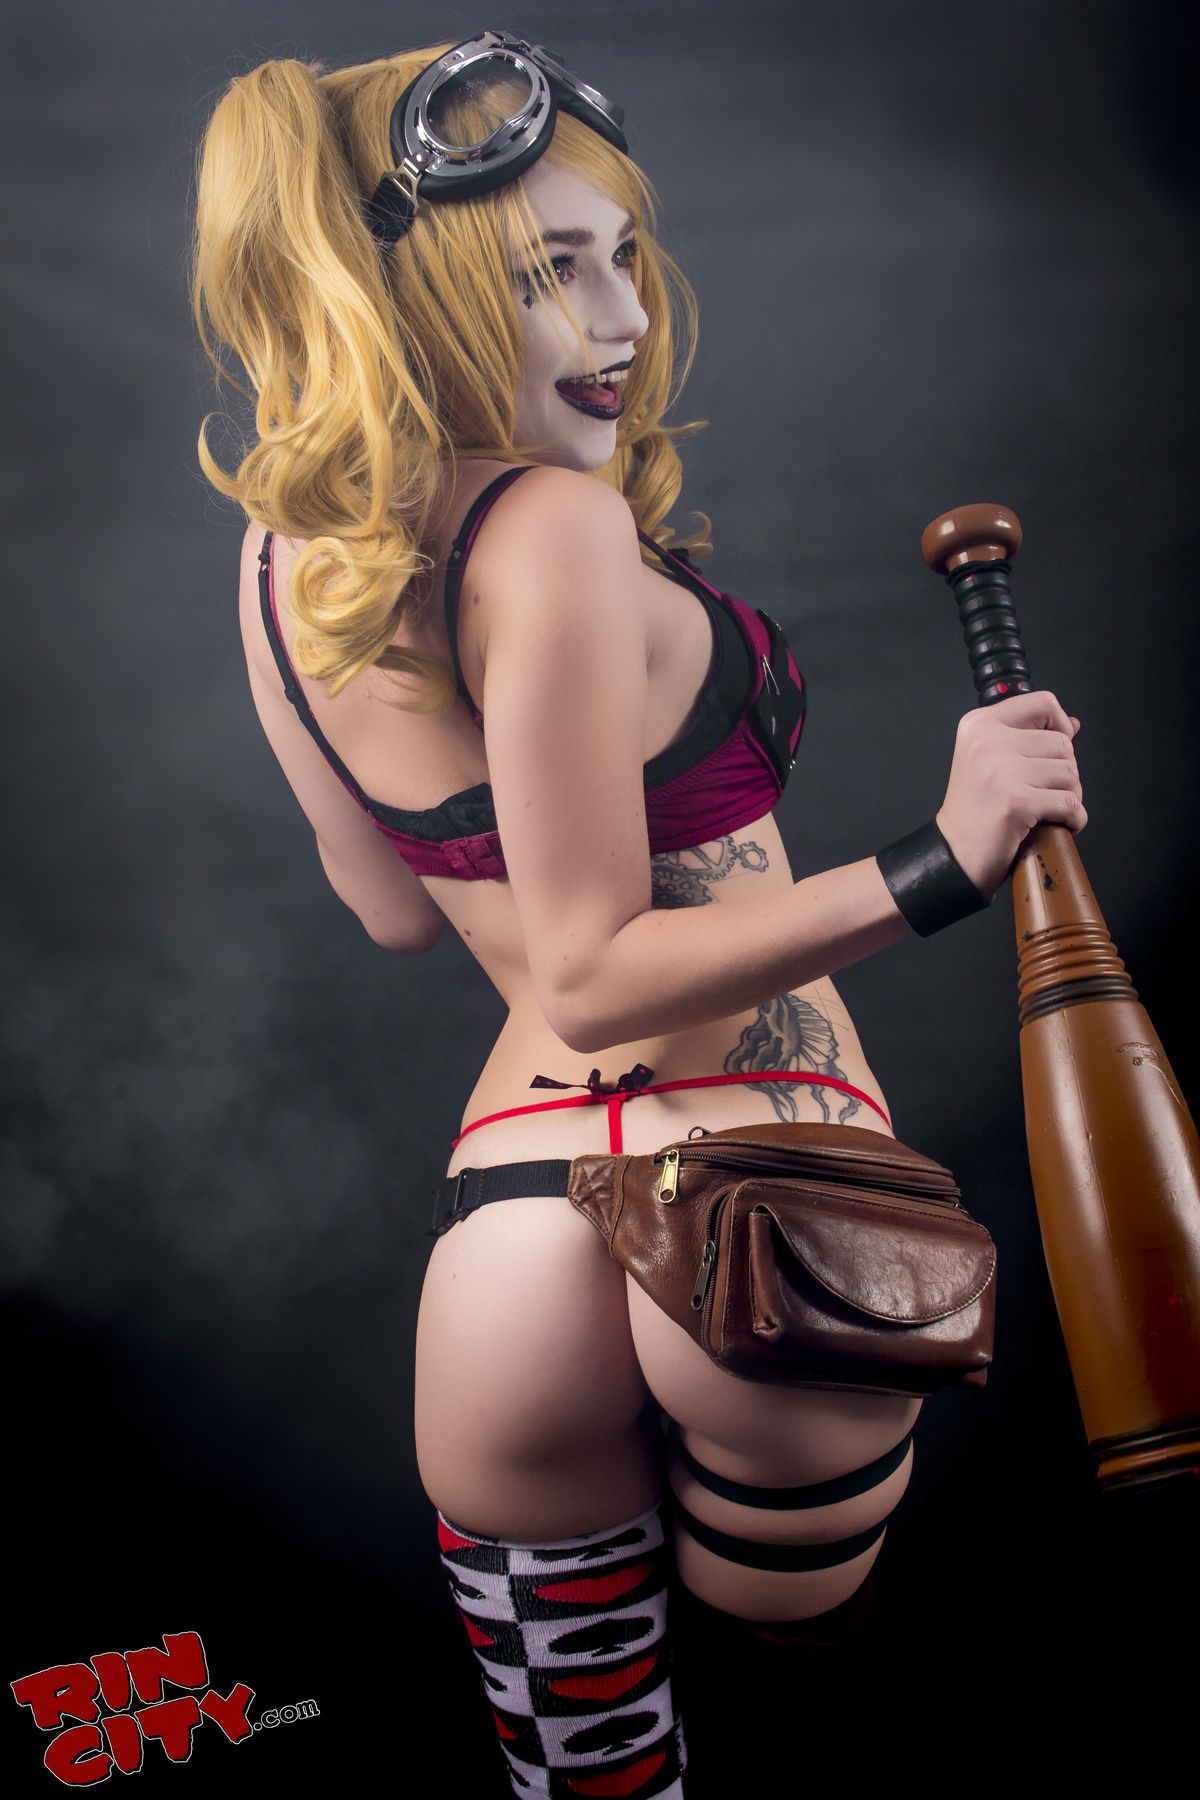 Harley Dilly >> Sexy Cosplay Booties | Cosplay Booty | Harley quinn